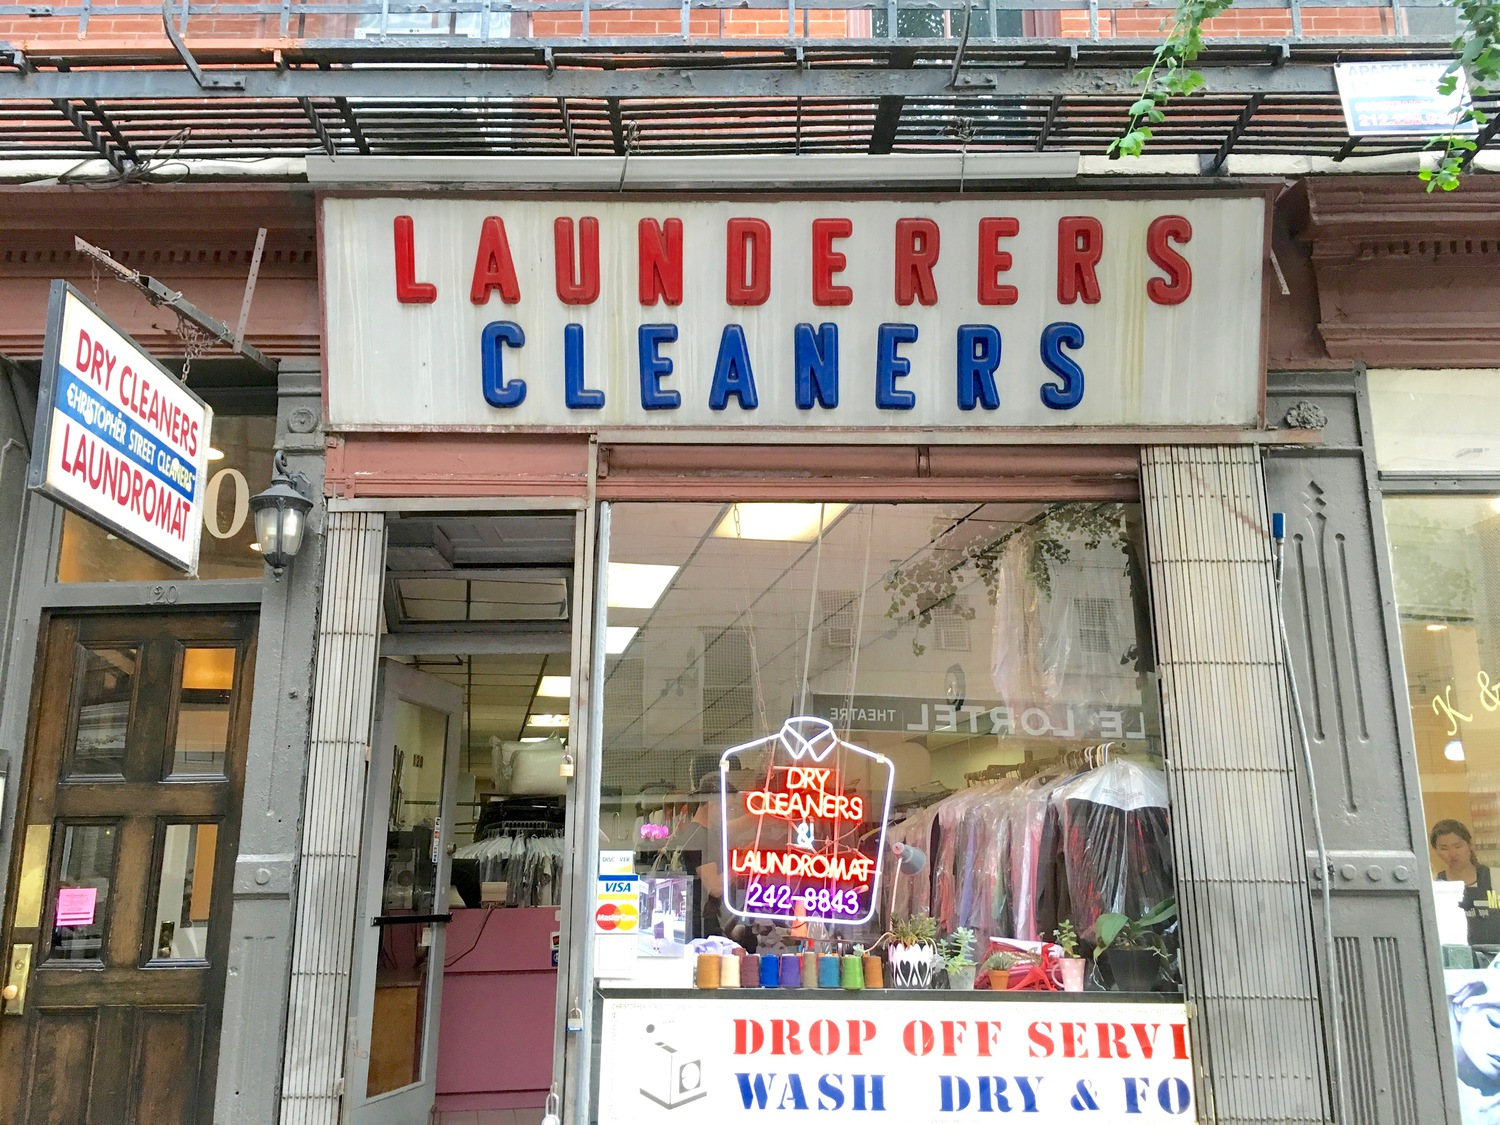 Launderers Cleaners